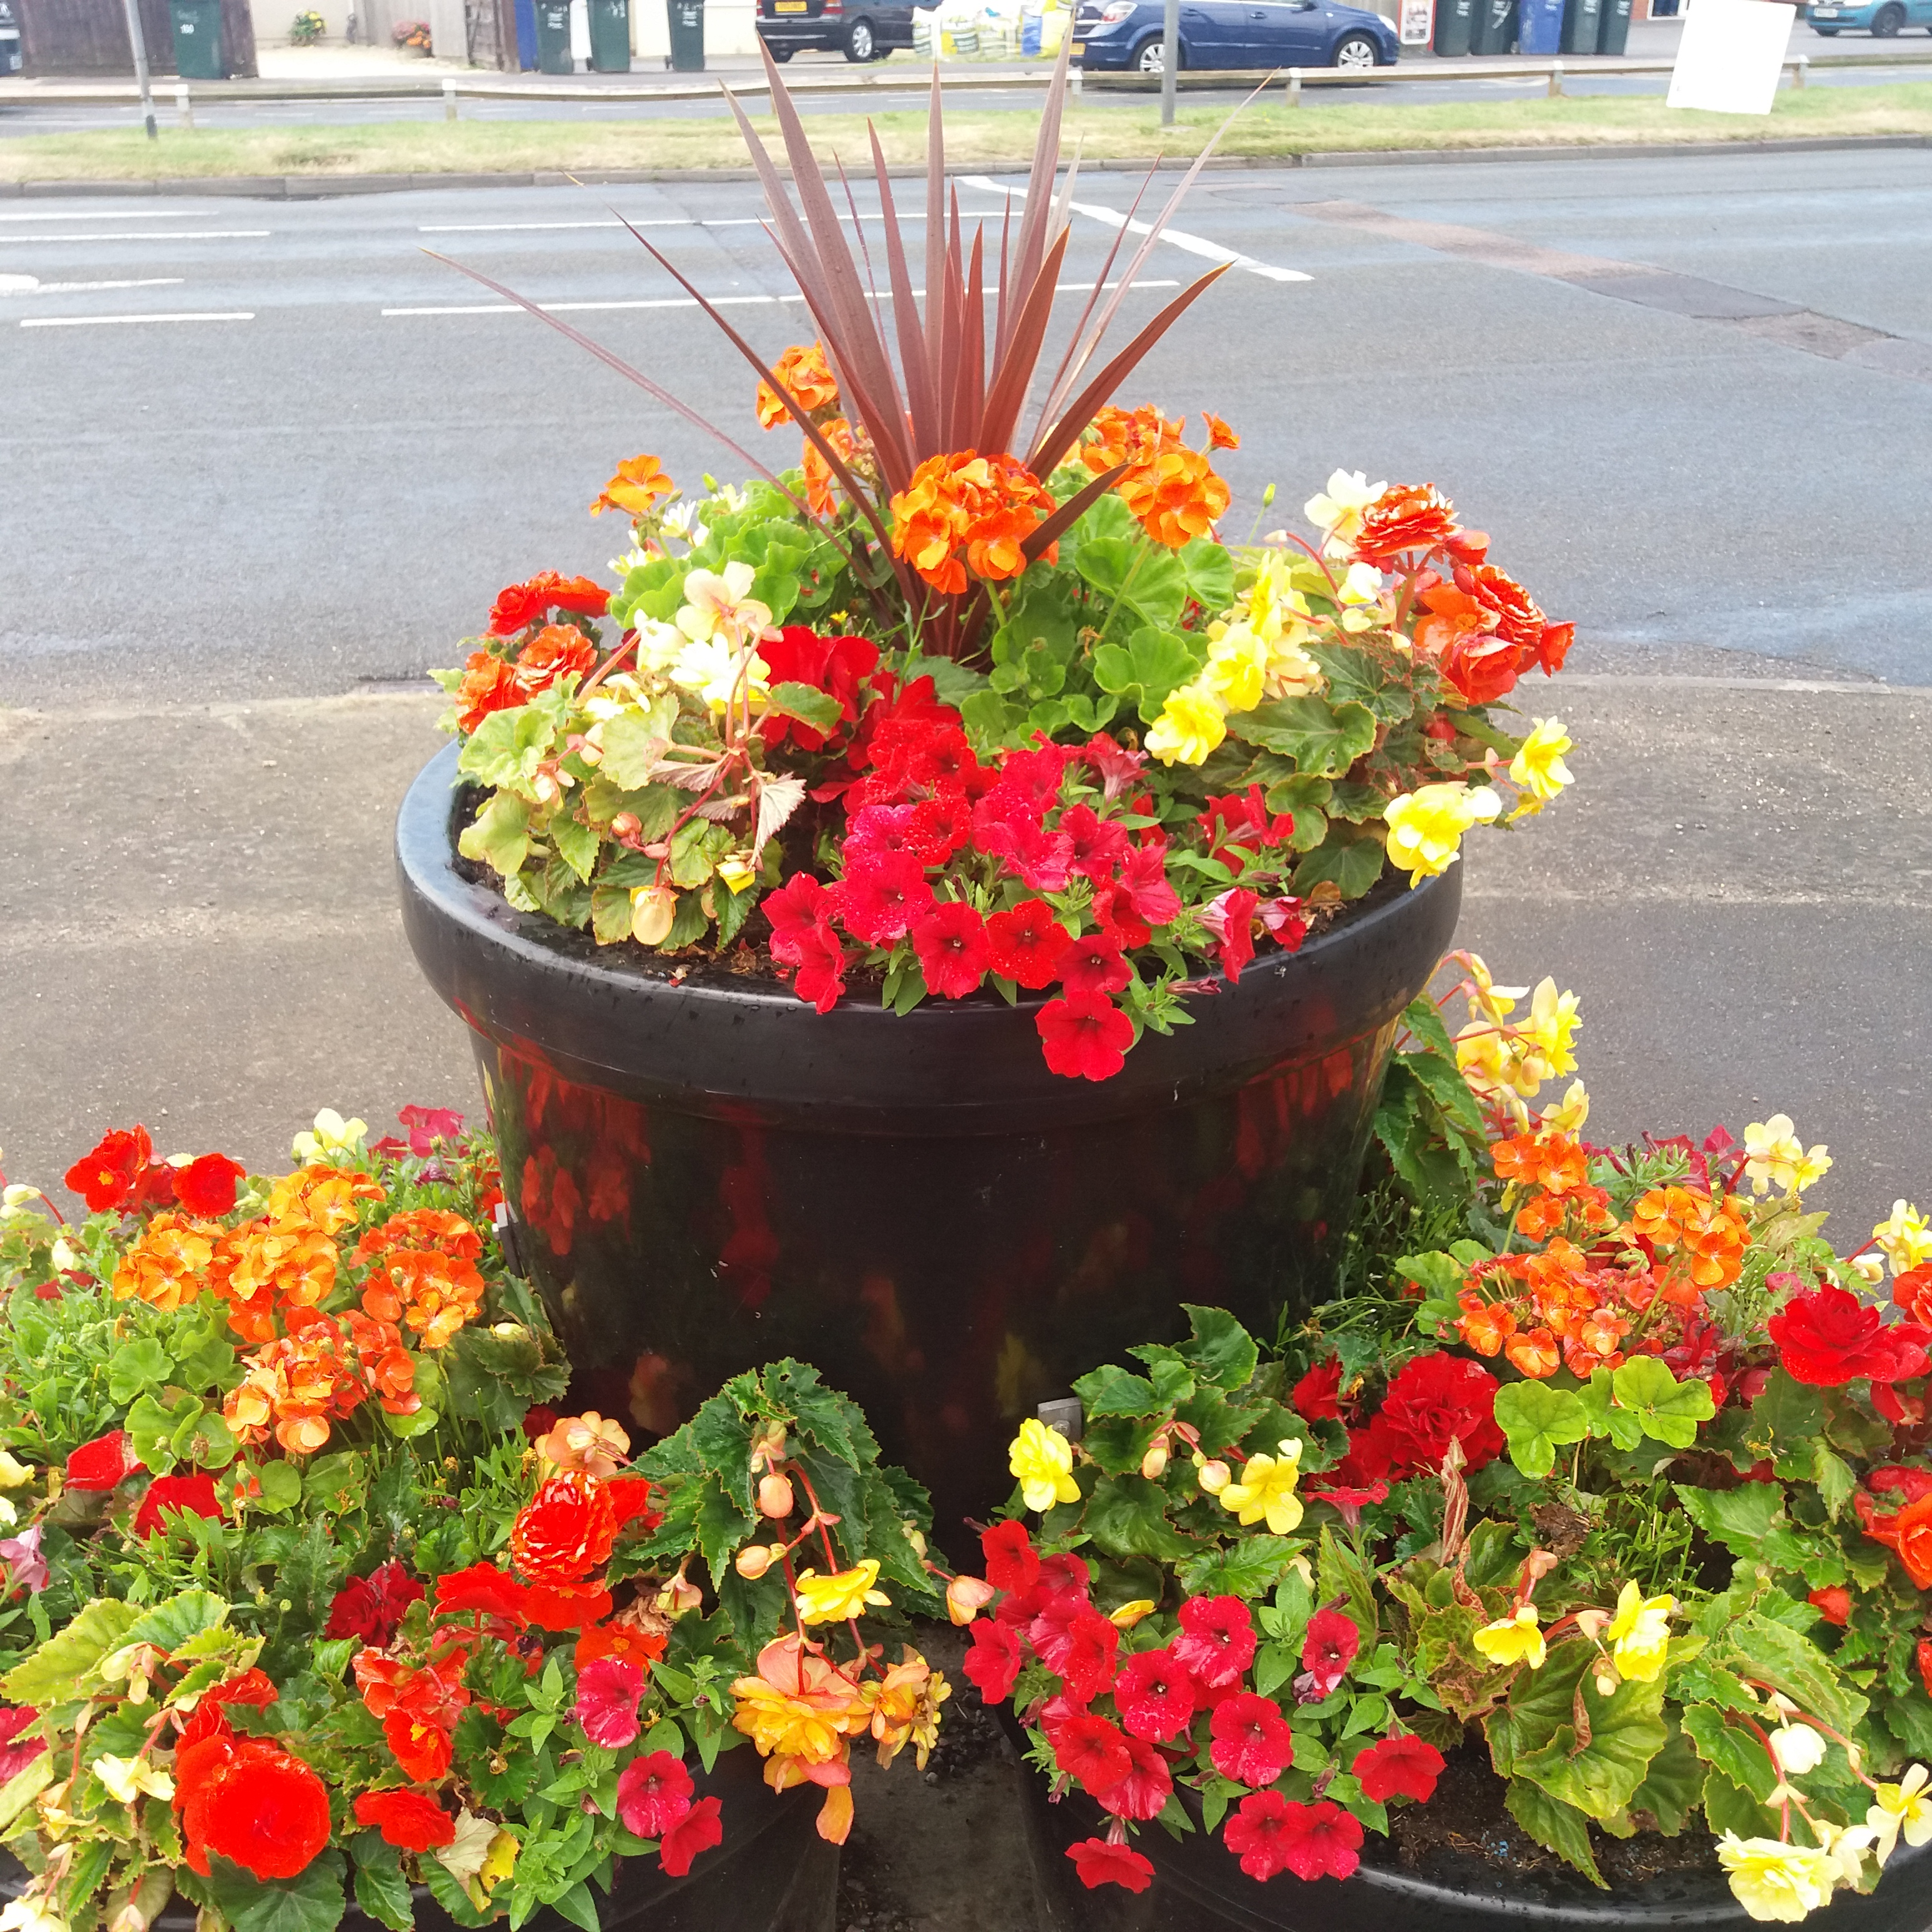 3 baskets of red and yellow flowers